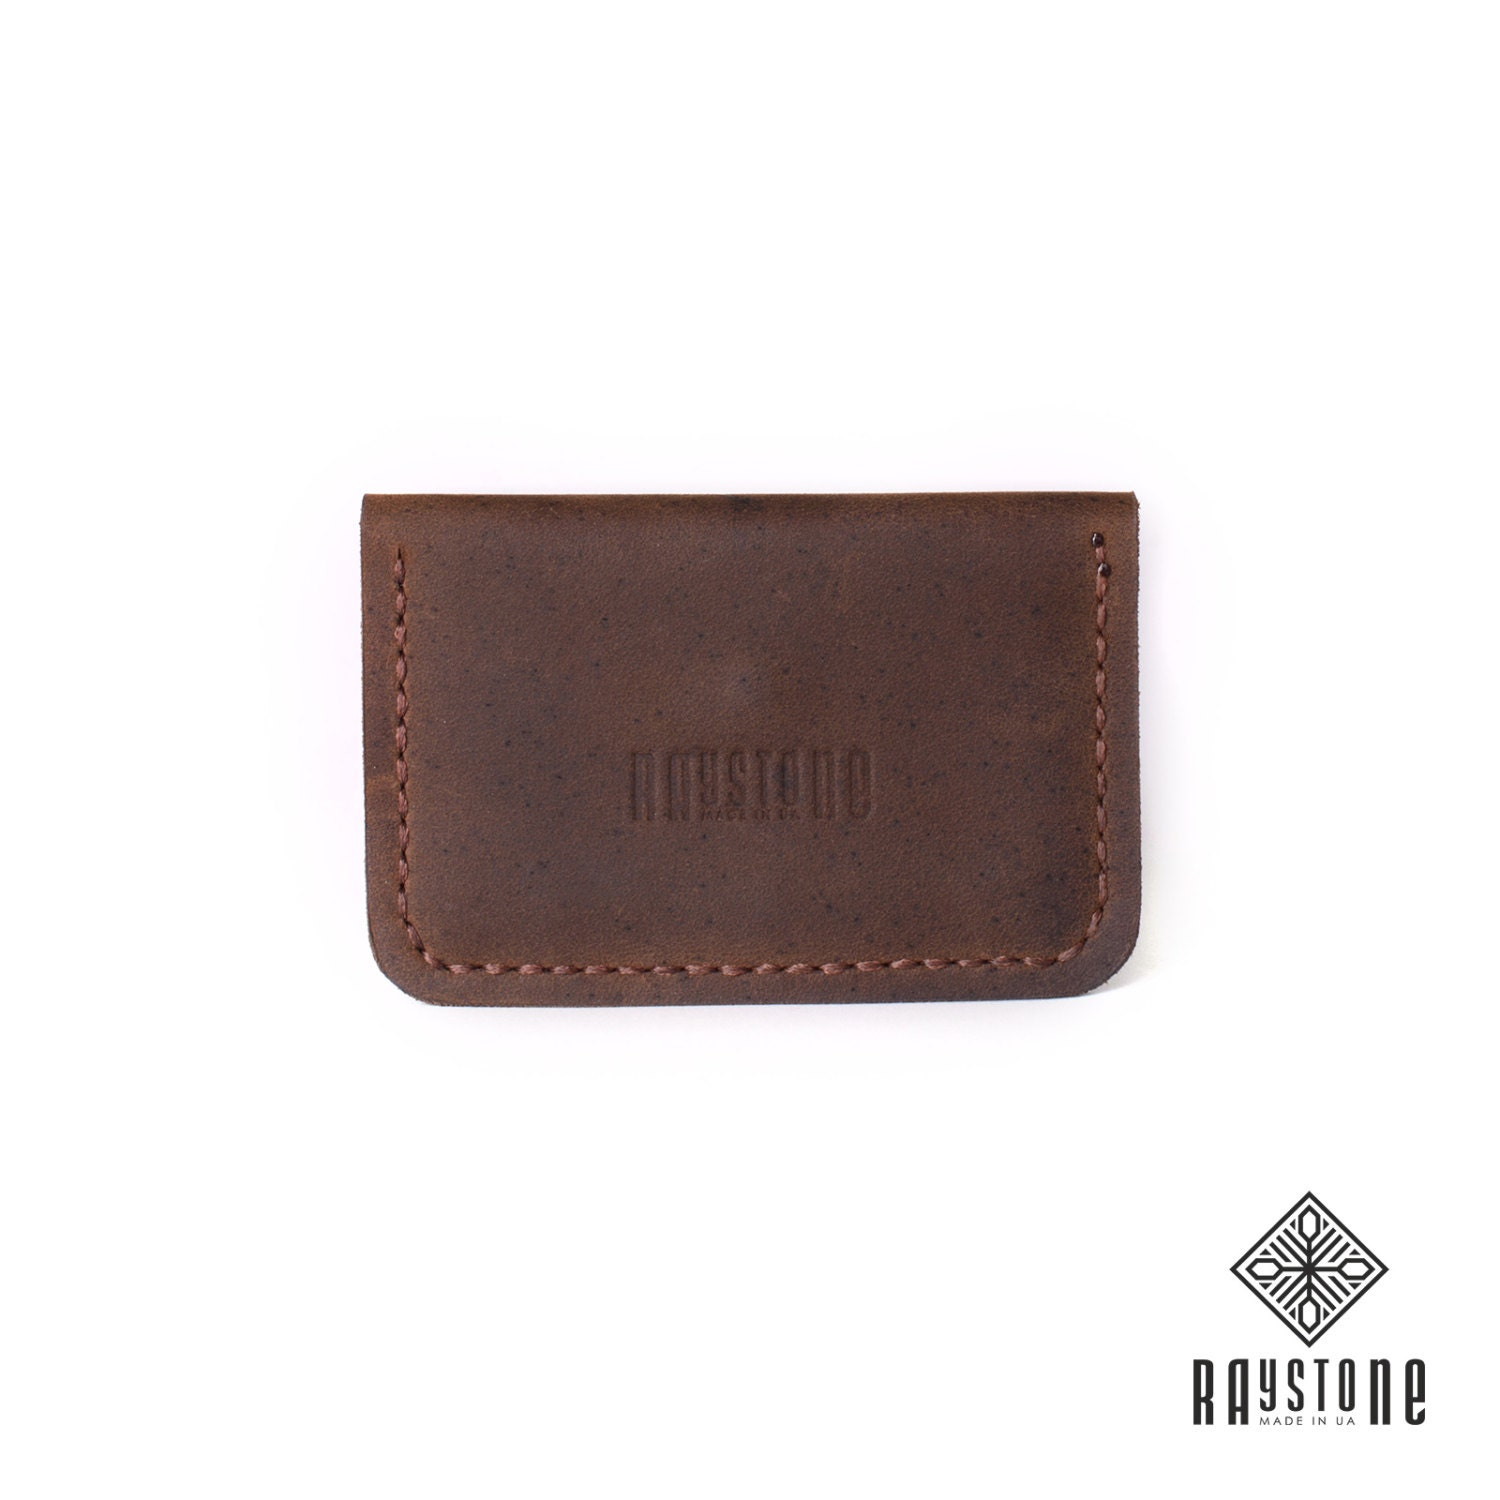 Leather Card Holder 705 - Brown Leather Card Wallet, Leather ...